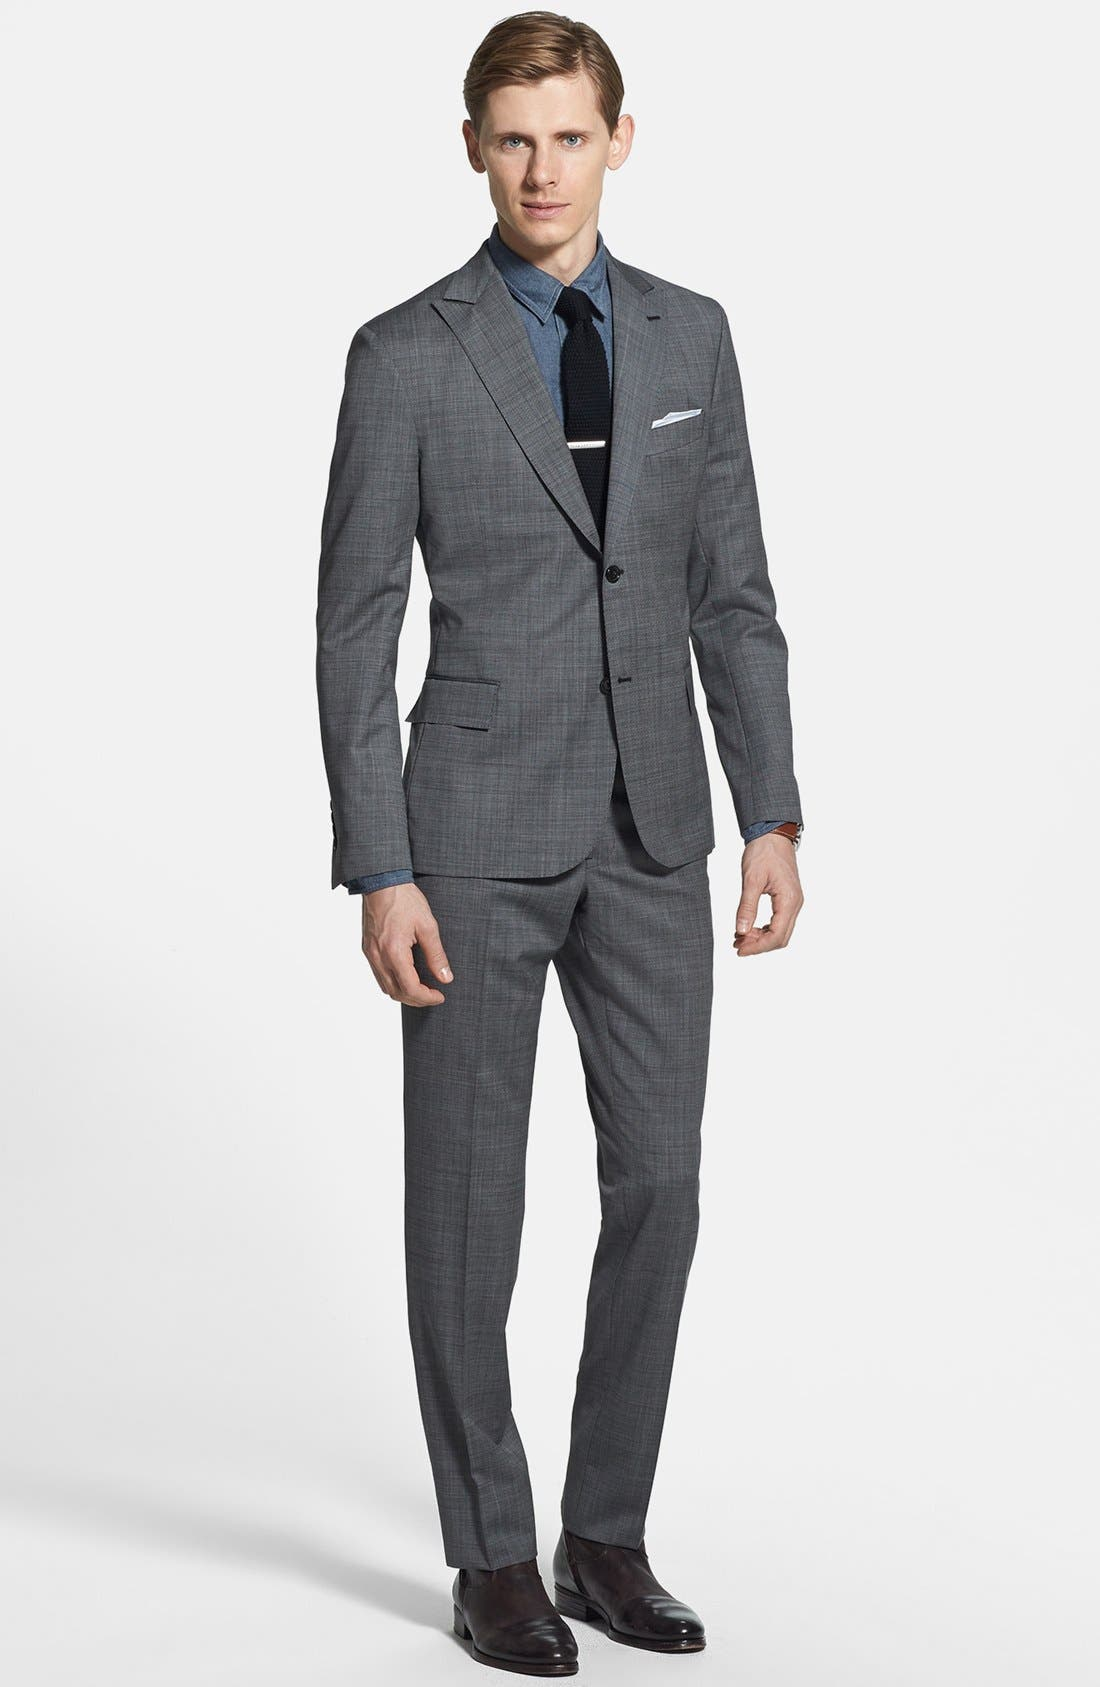 Main Image - Todd Snyder Grey Wool Suit